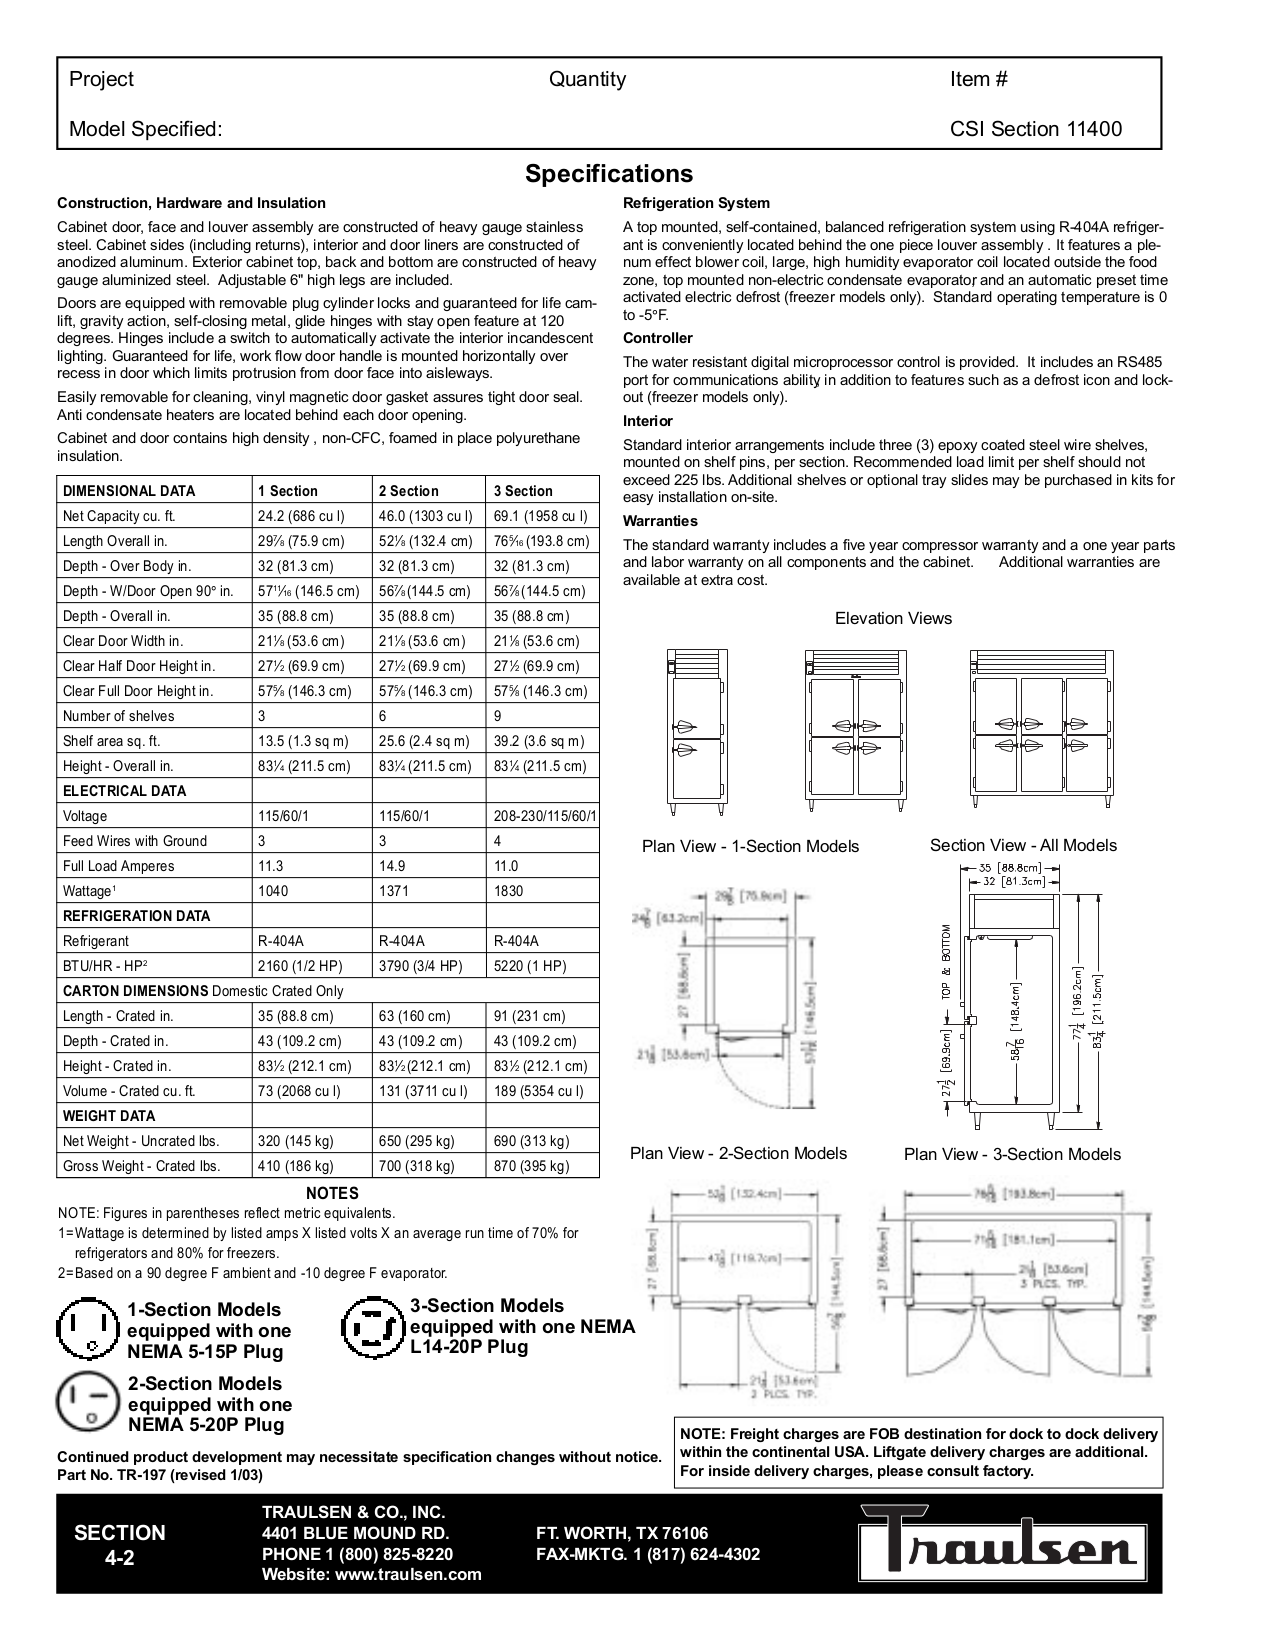 Traulsen refrigerator wiring diagram free download wiring diagrams traulsen g12011 wiring diagram wiring diagram virtual fretboard hotpoint refrigerator wiring diagram bohn refrigeration wiring diagrams asfbconference2016